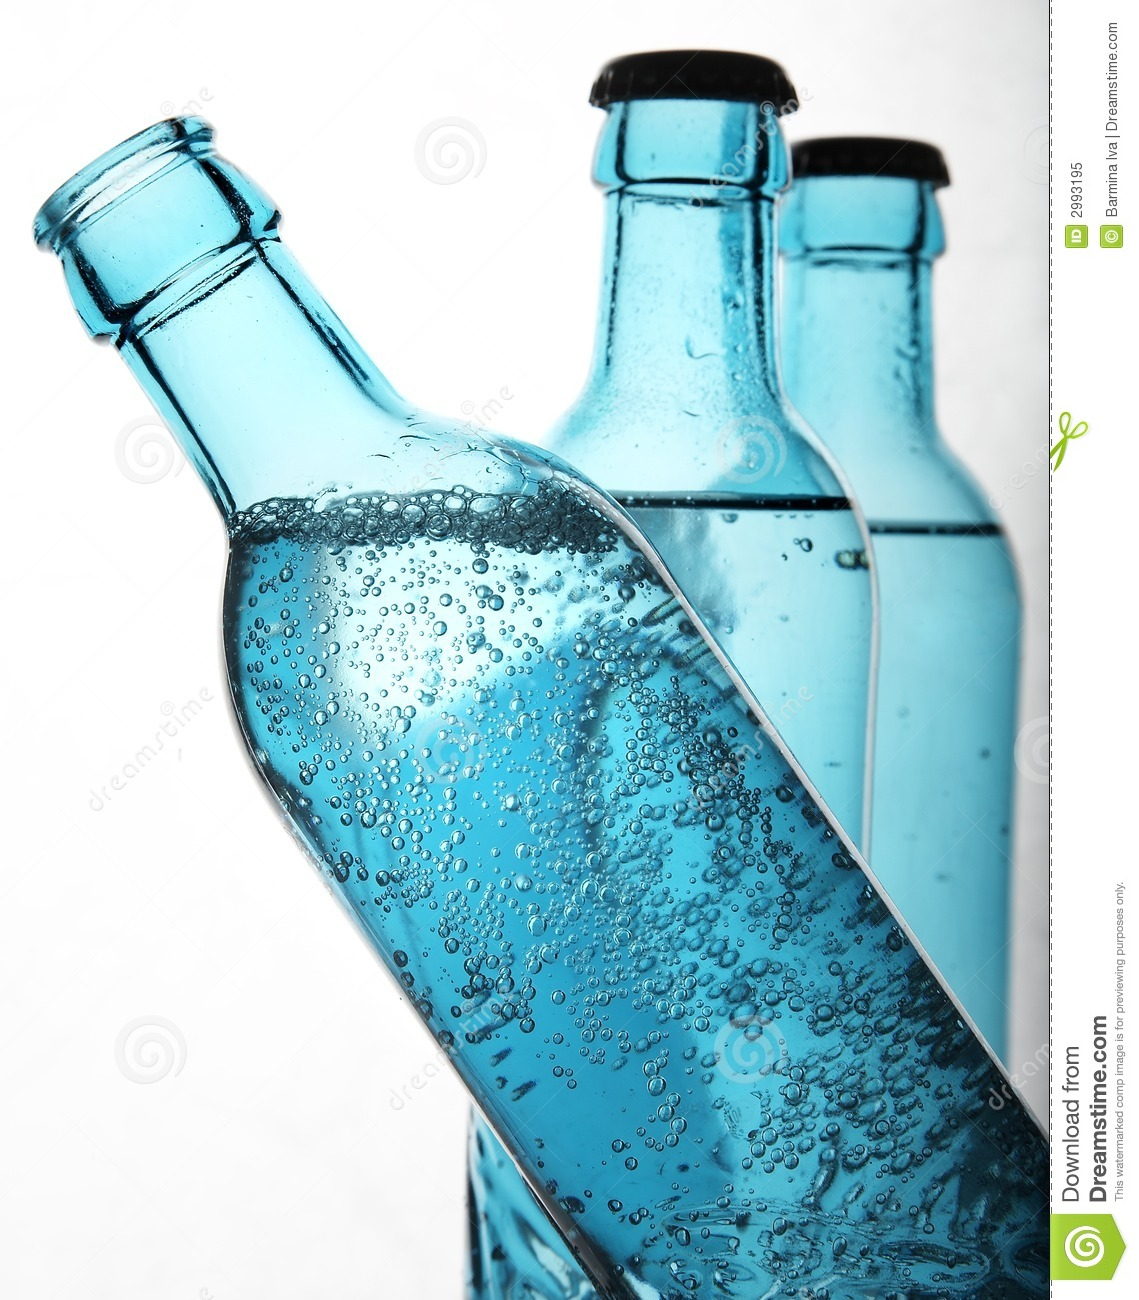 Mineral sparkling water in blue bottles on white background.